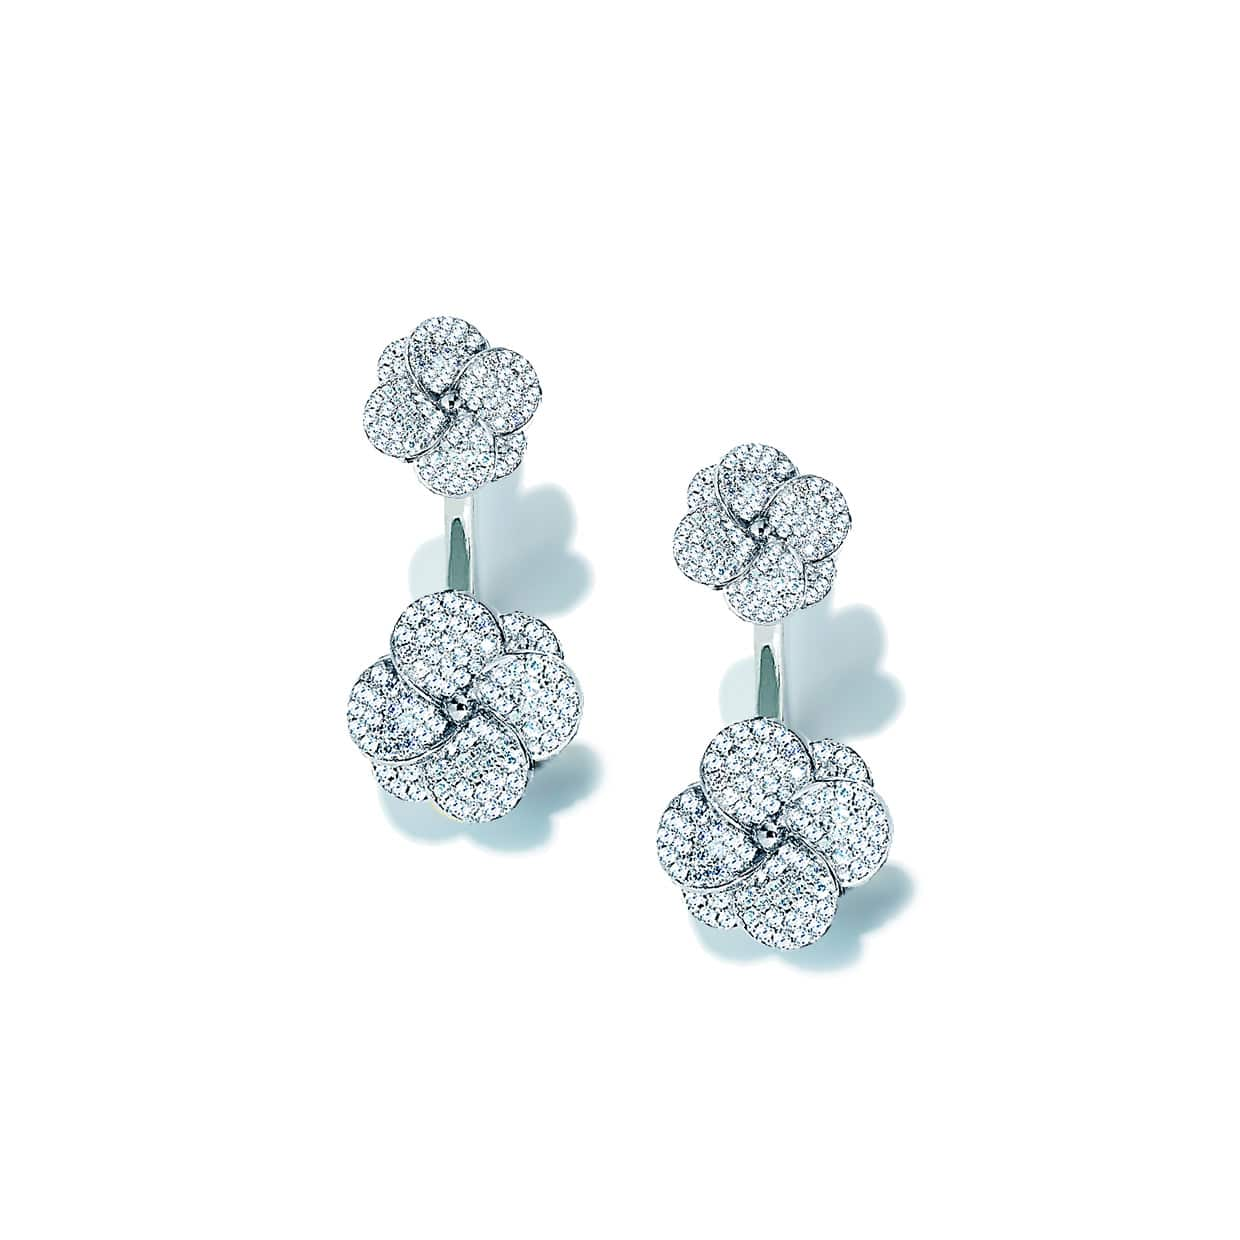 Flora Silver Double Flower Earrings - Abelstedt